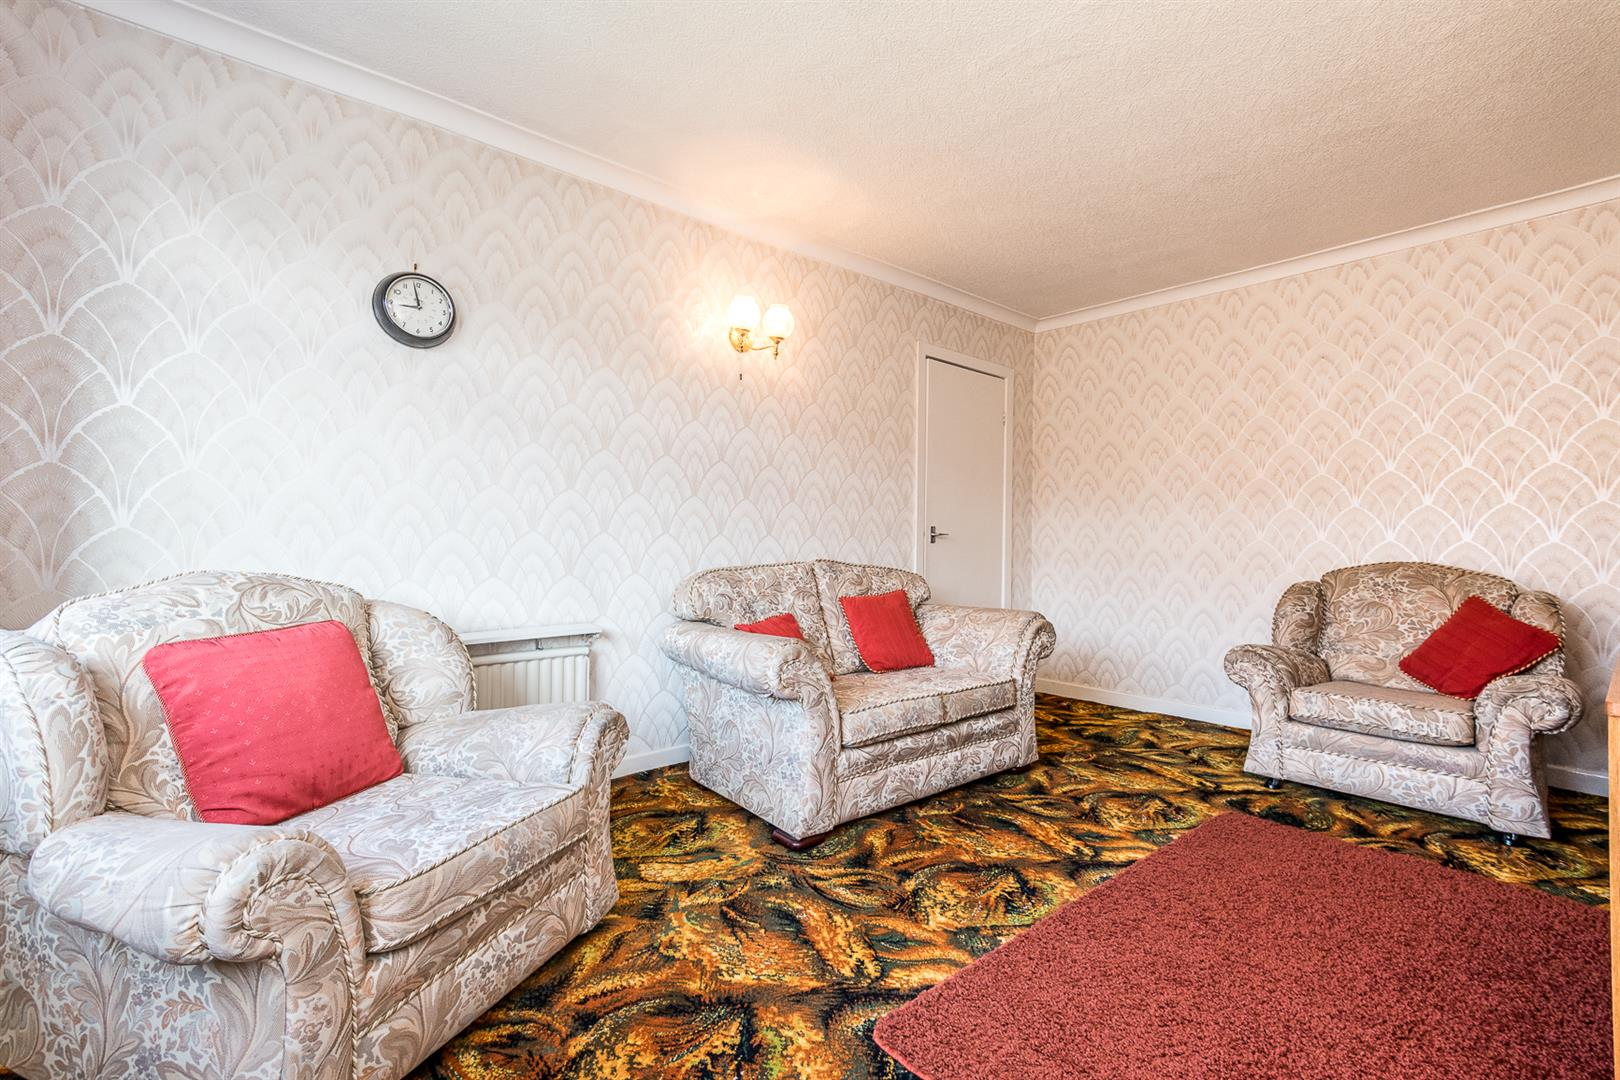 2 Bedroom Semi Detached Bungalow Sale Agreed Image 2